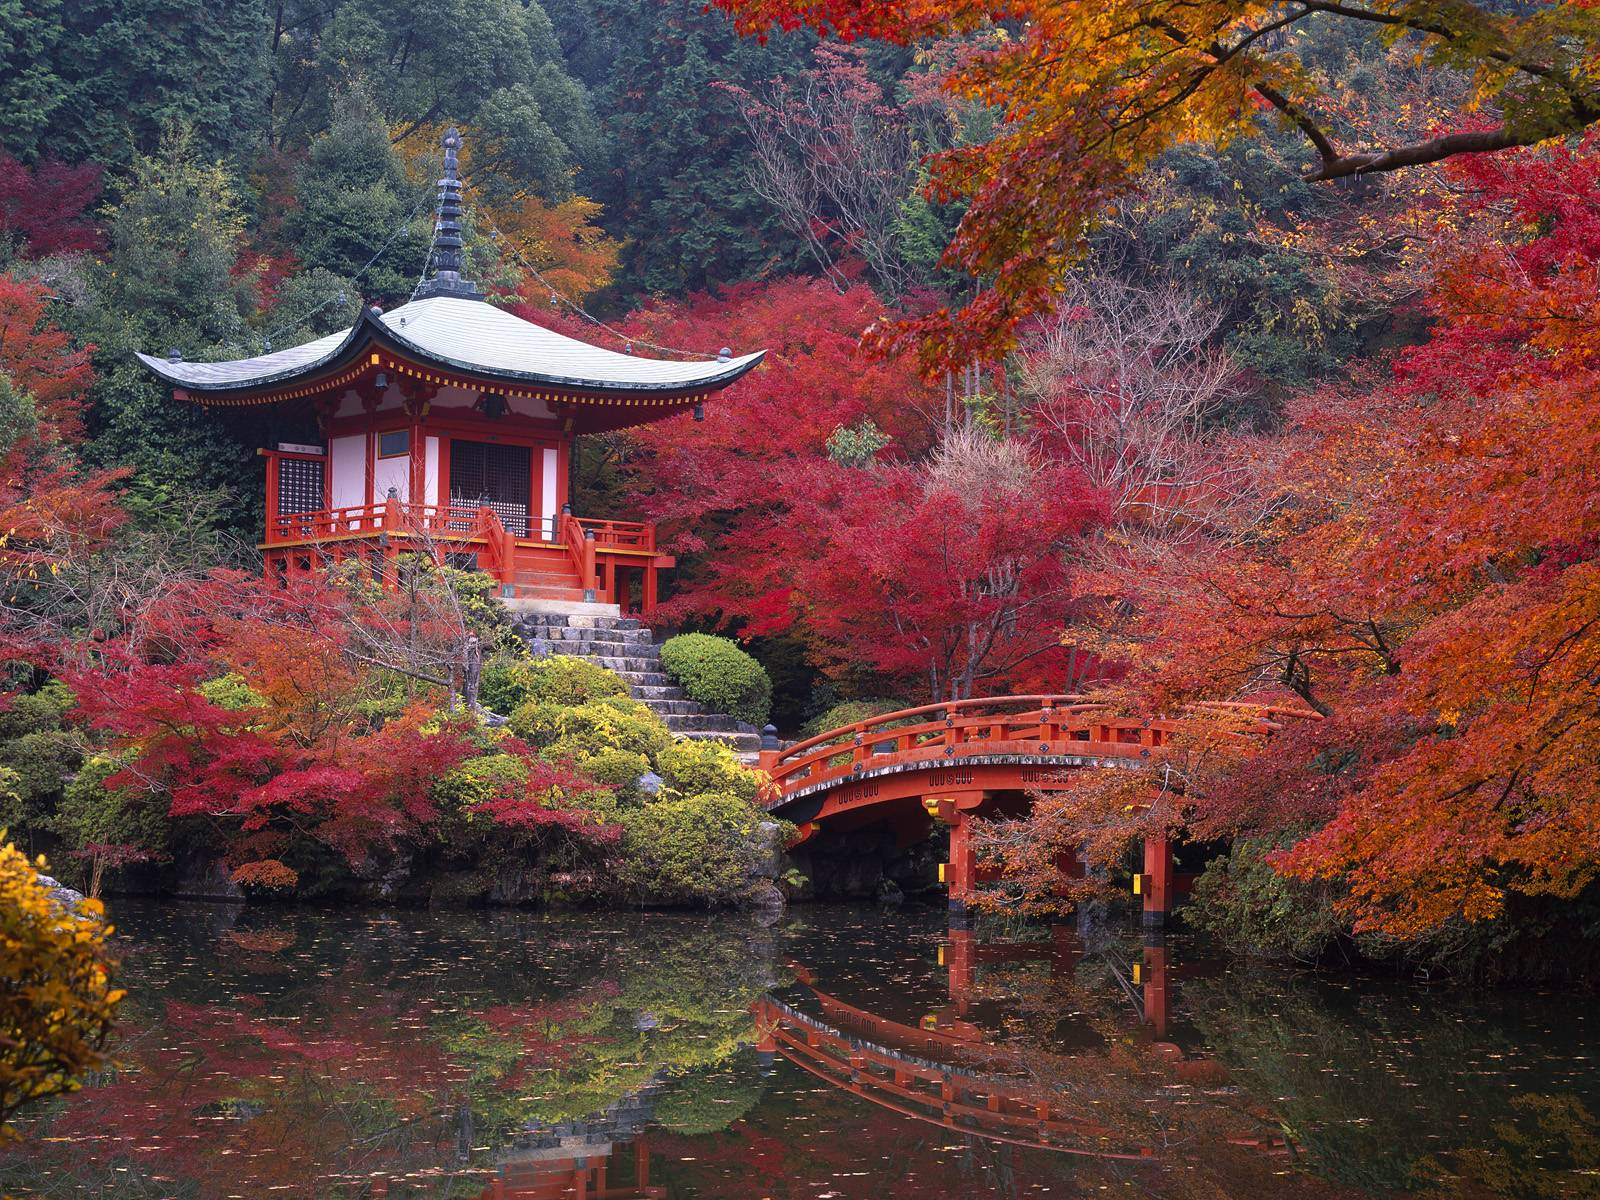 daigo-ji-temple-looks-beautiful-in-autumn